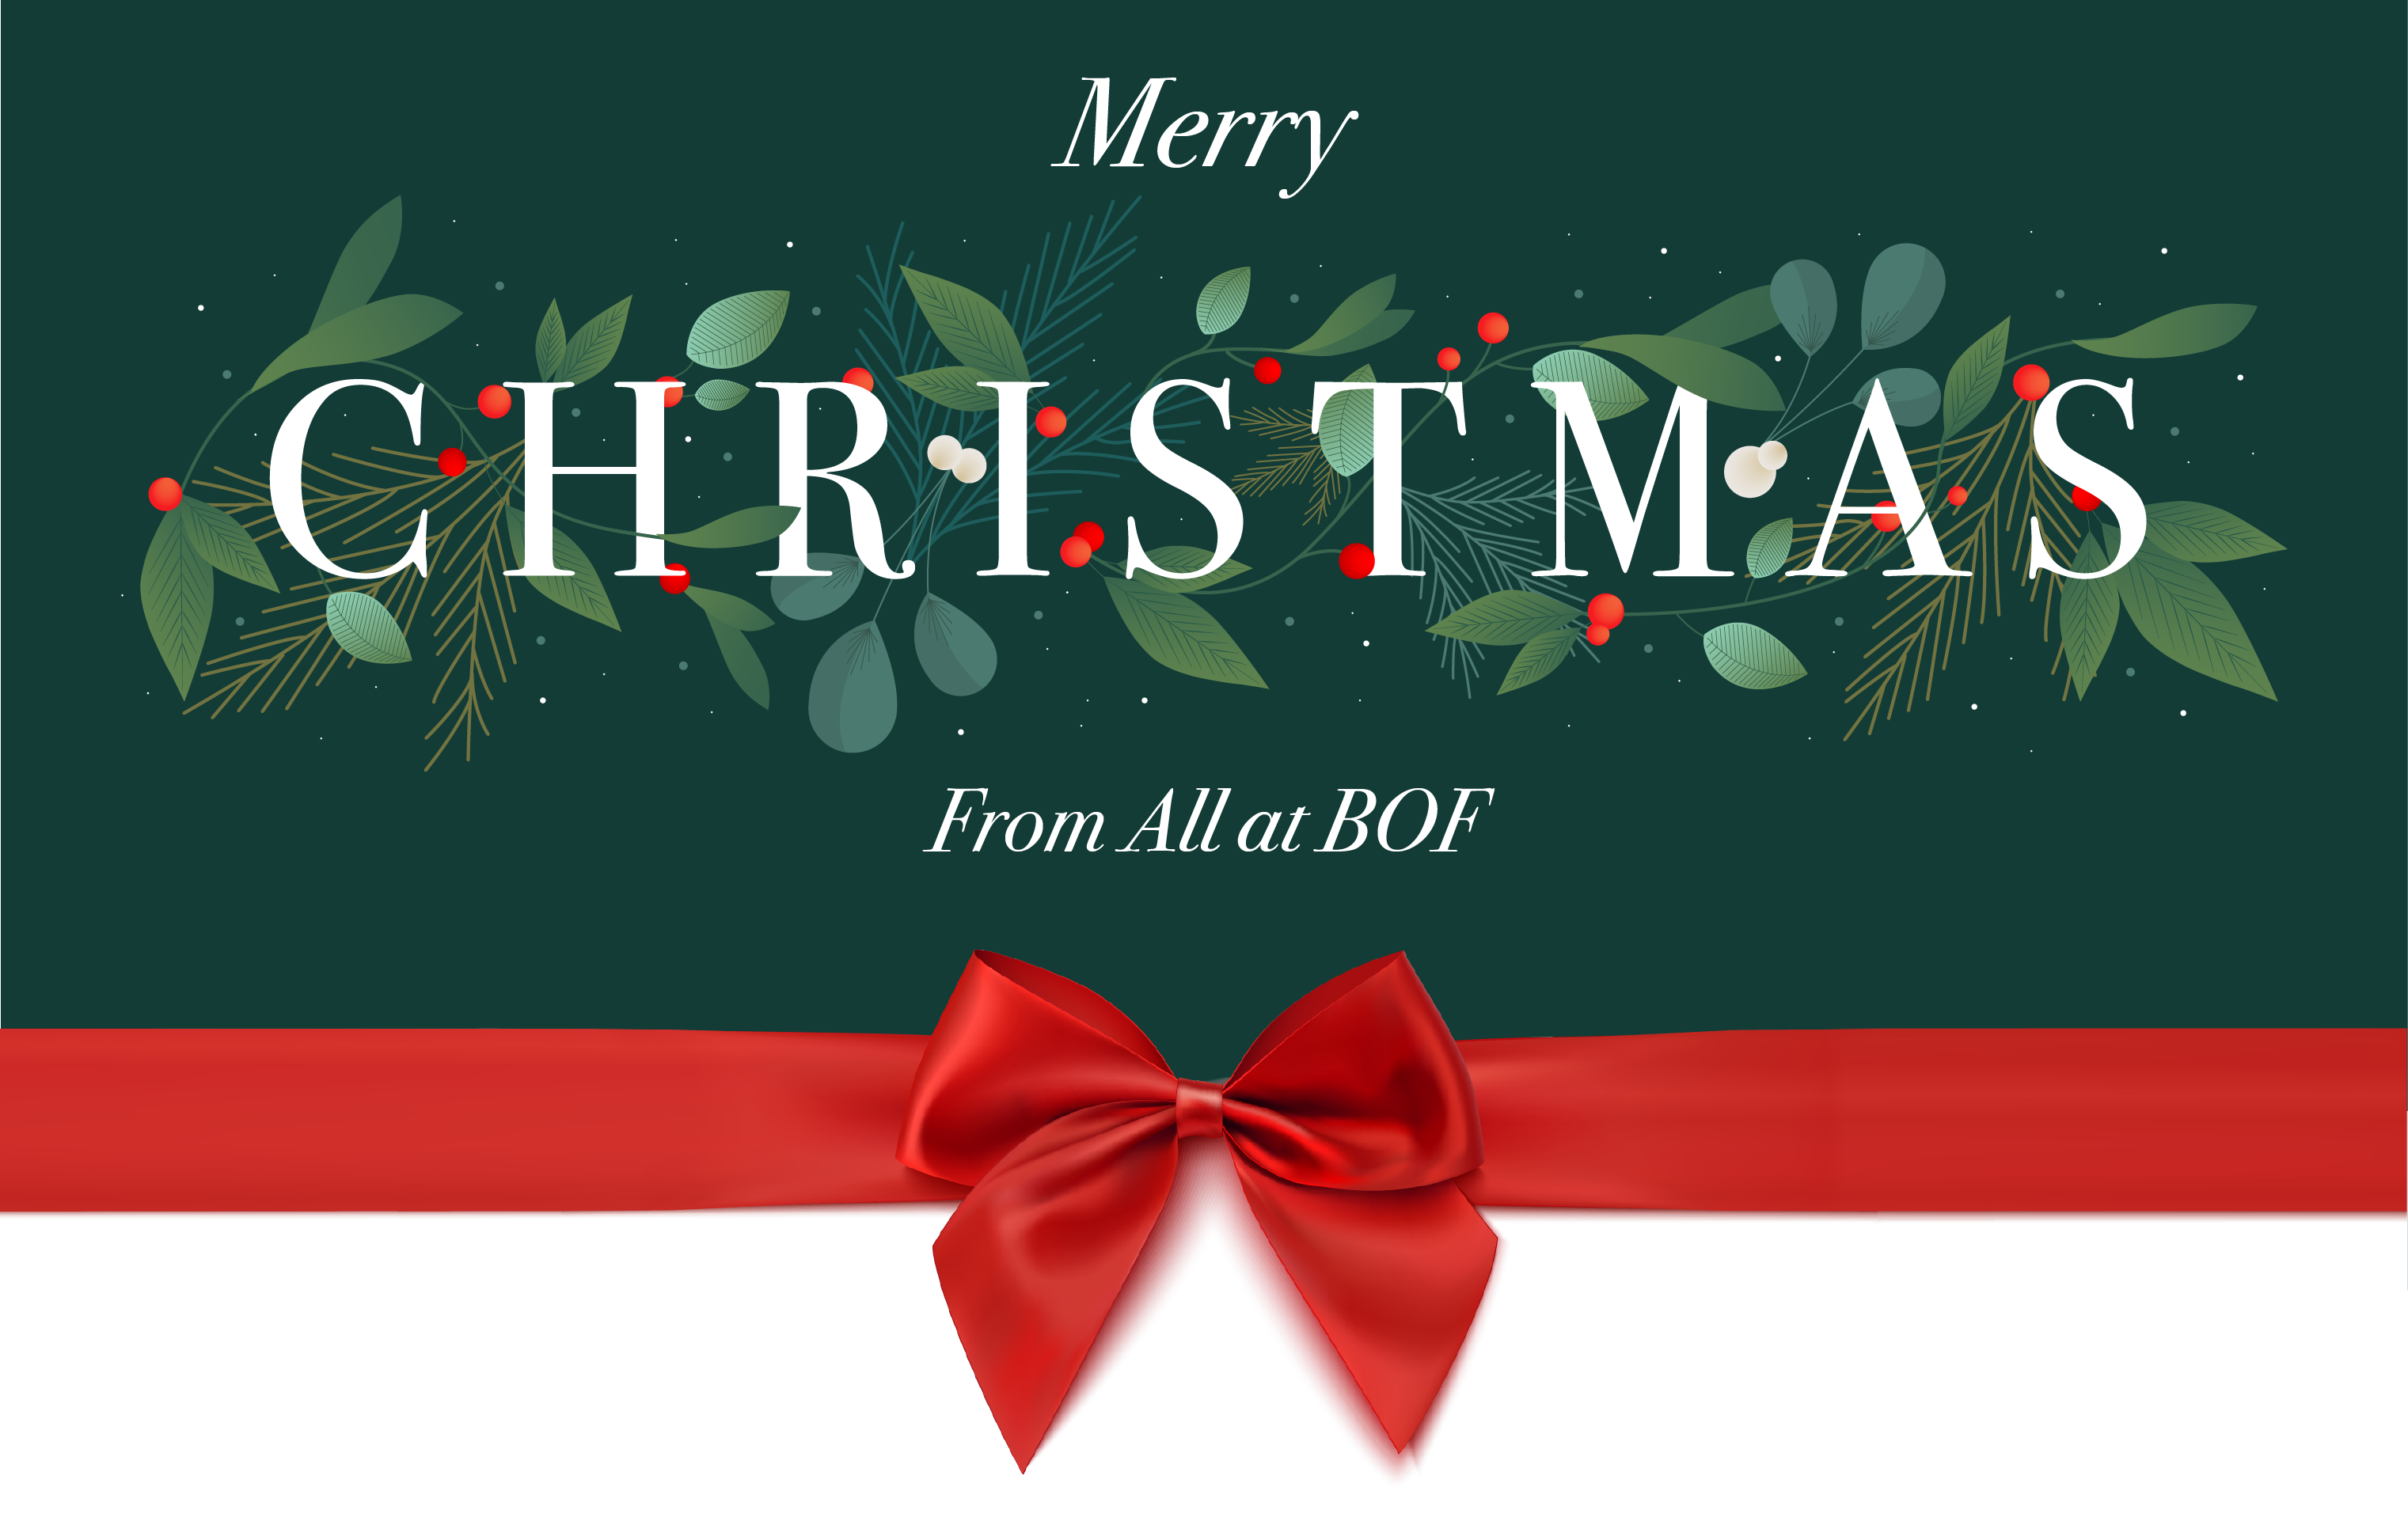 Merry Christmas & Happy New Year from all at BOF